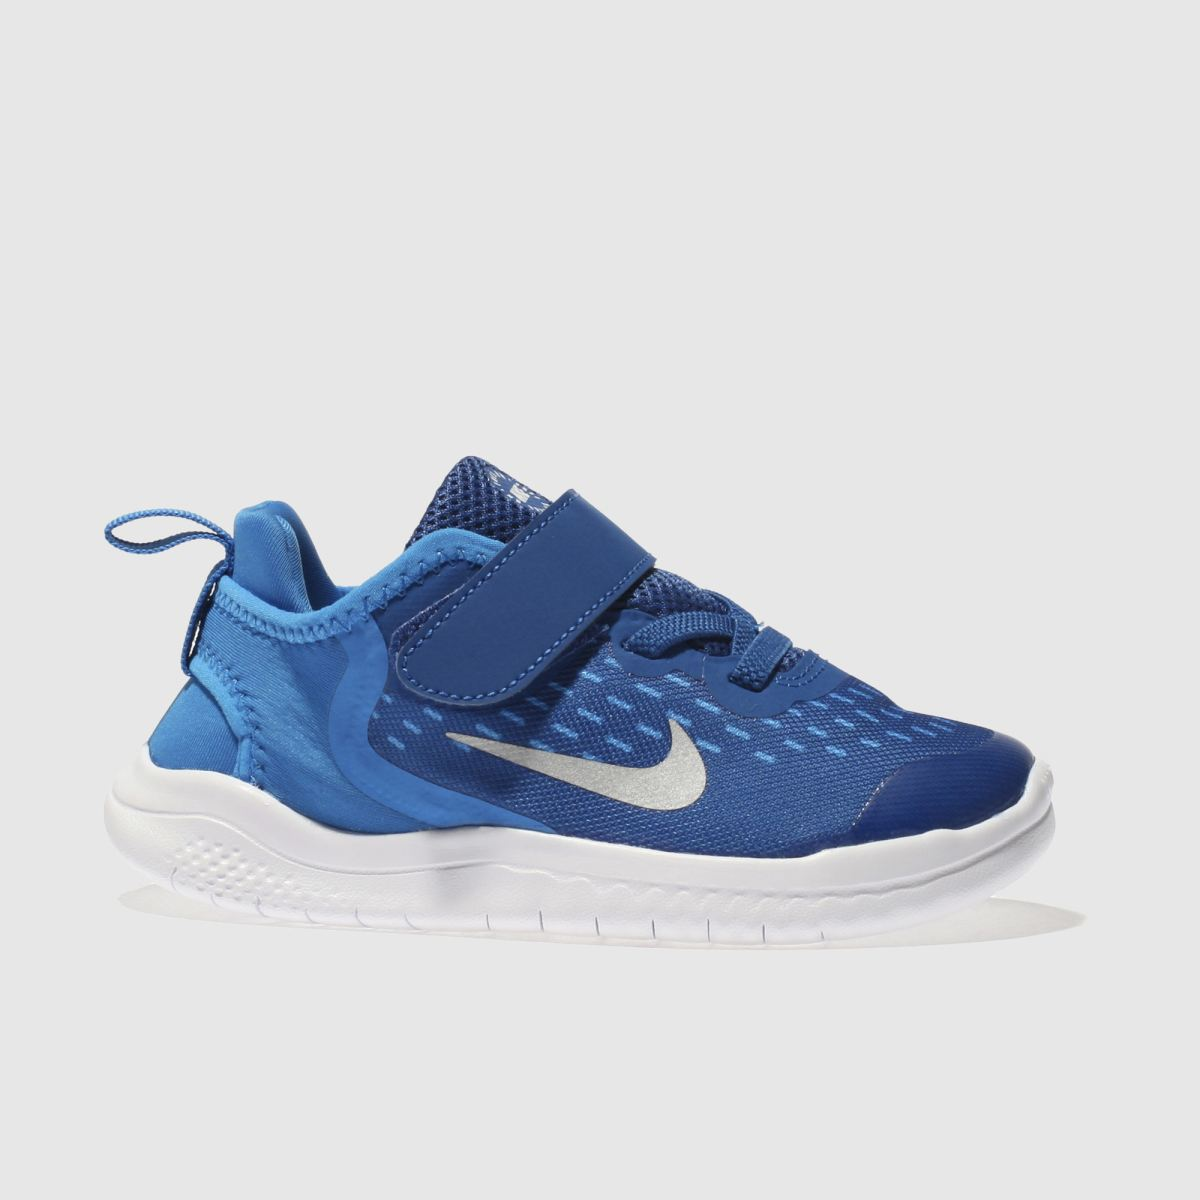 Nike Navy & White Free Rn 2018 Boys Toddler Trainers